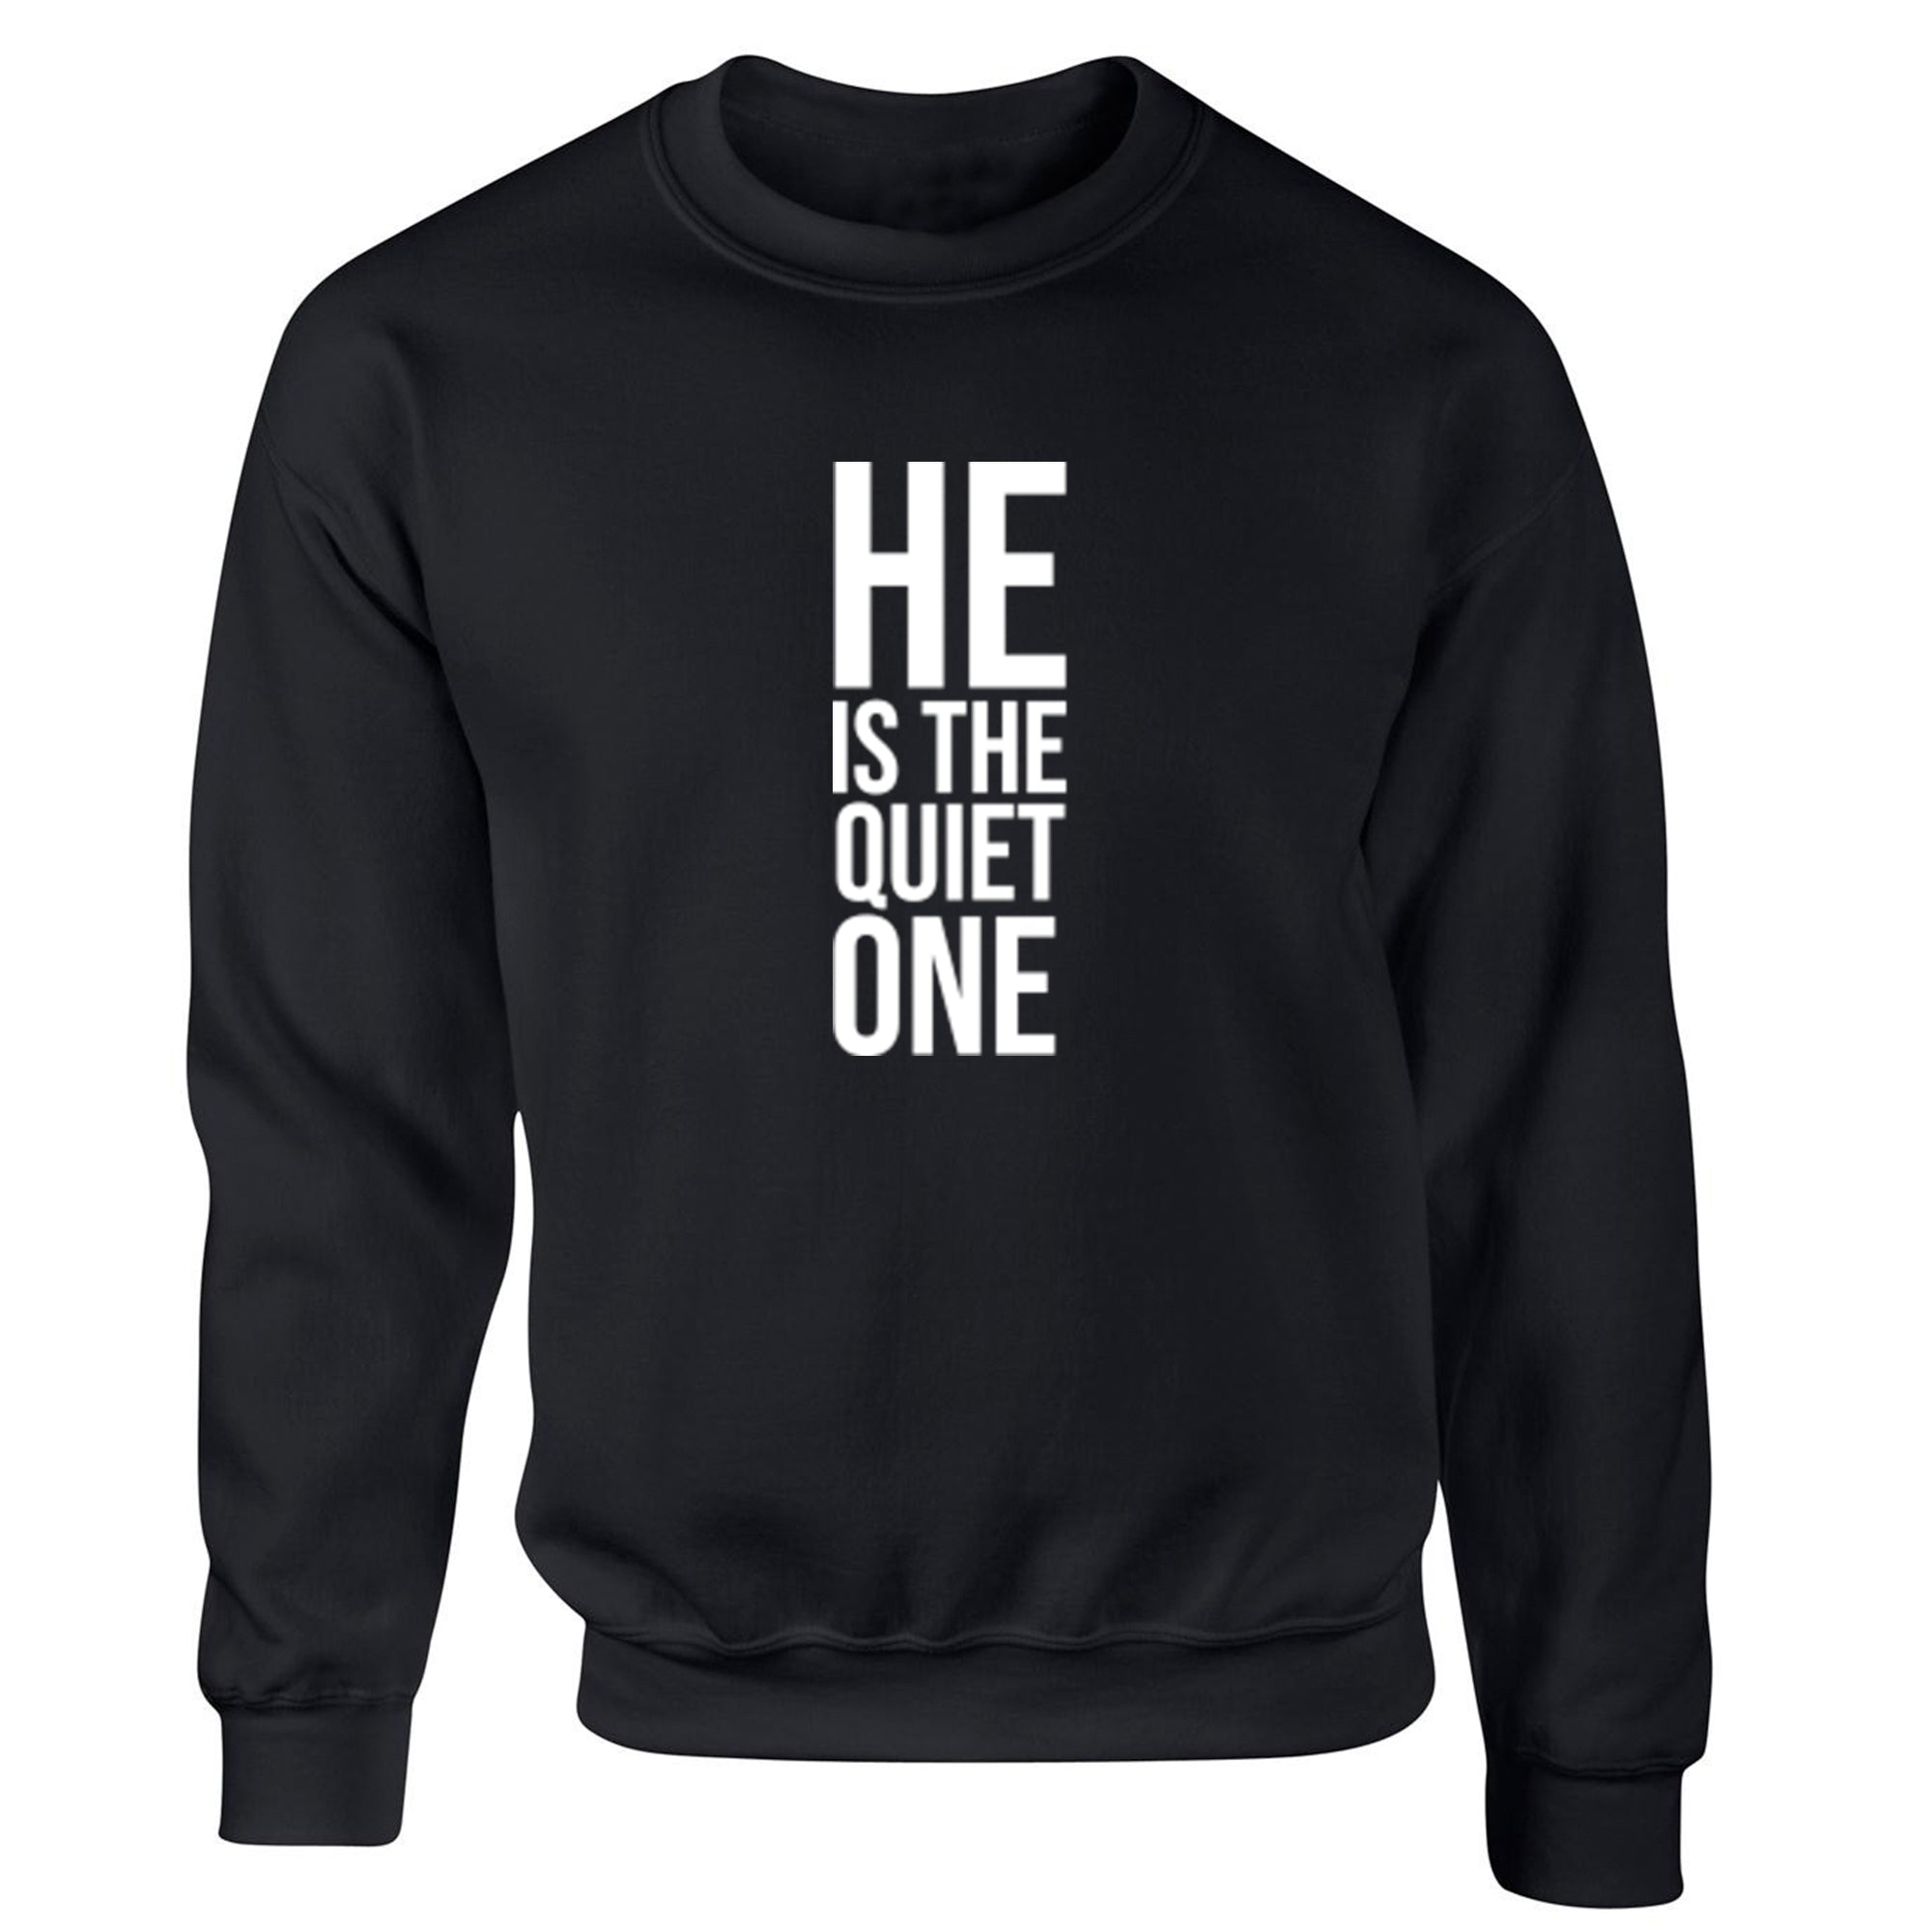 He Is The Quiet One Childrens Ages 3/4-12/14 Unisex Jumper S0336 - Illustrated Identity Ltd.